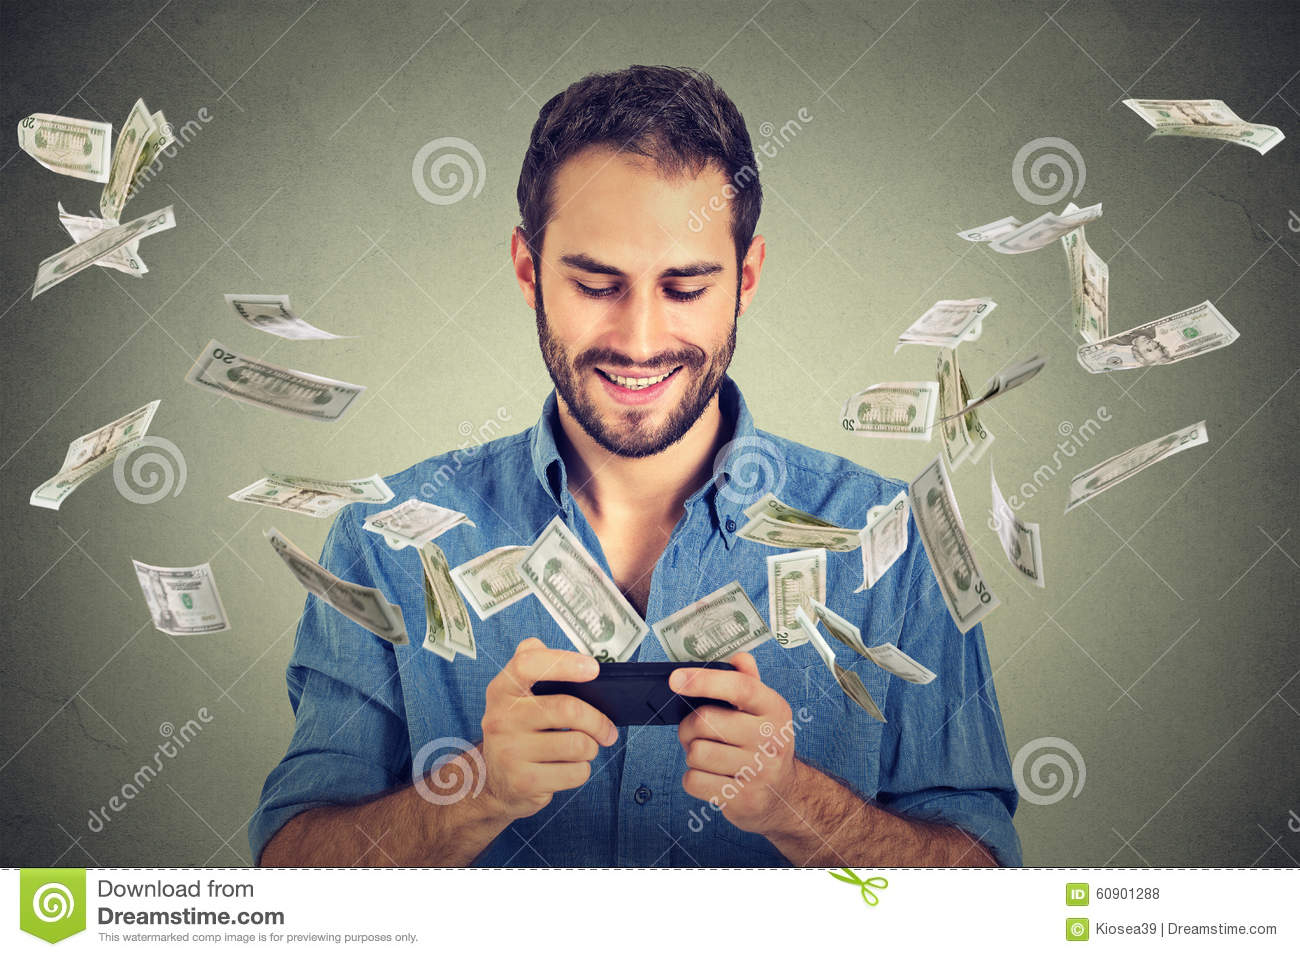 Technology online banking money transfer, e-commerce concept.